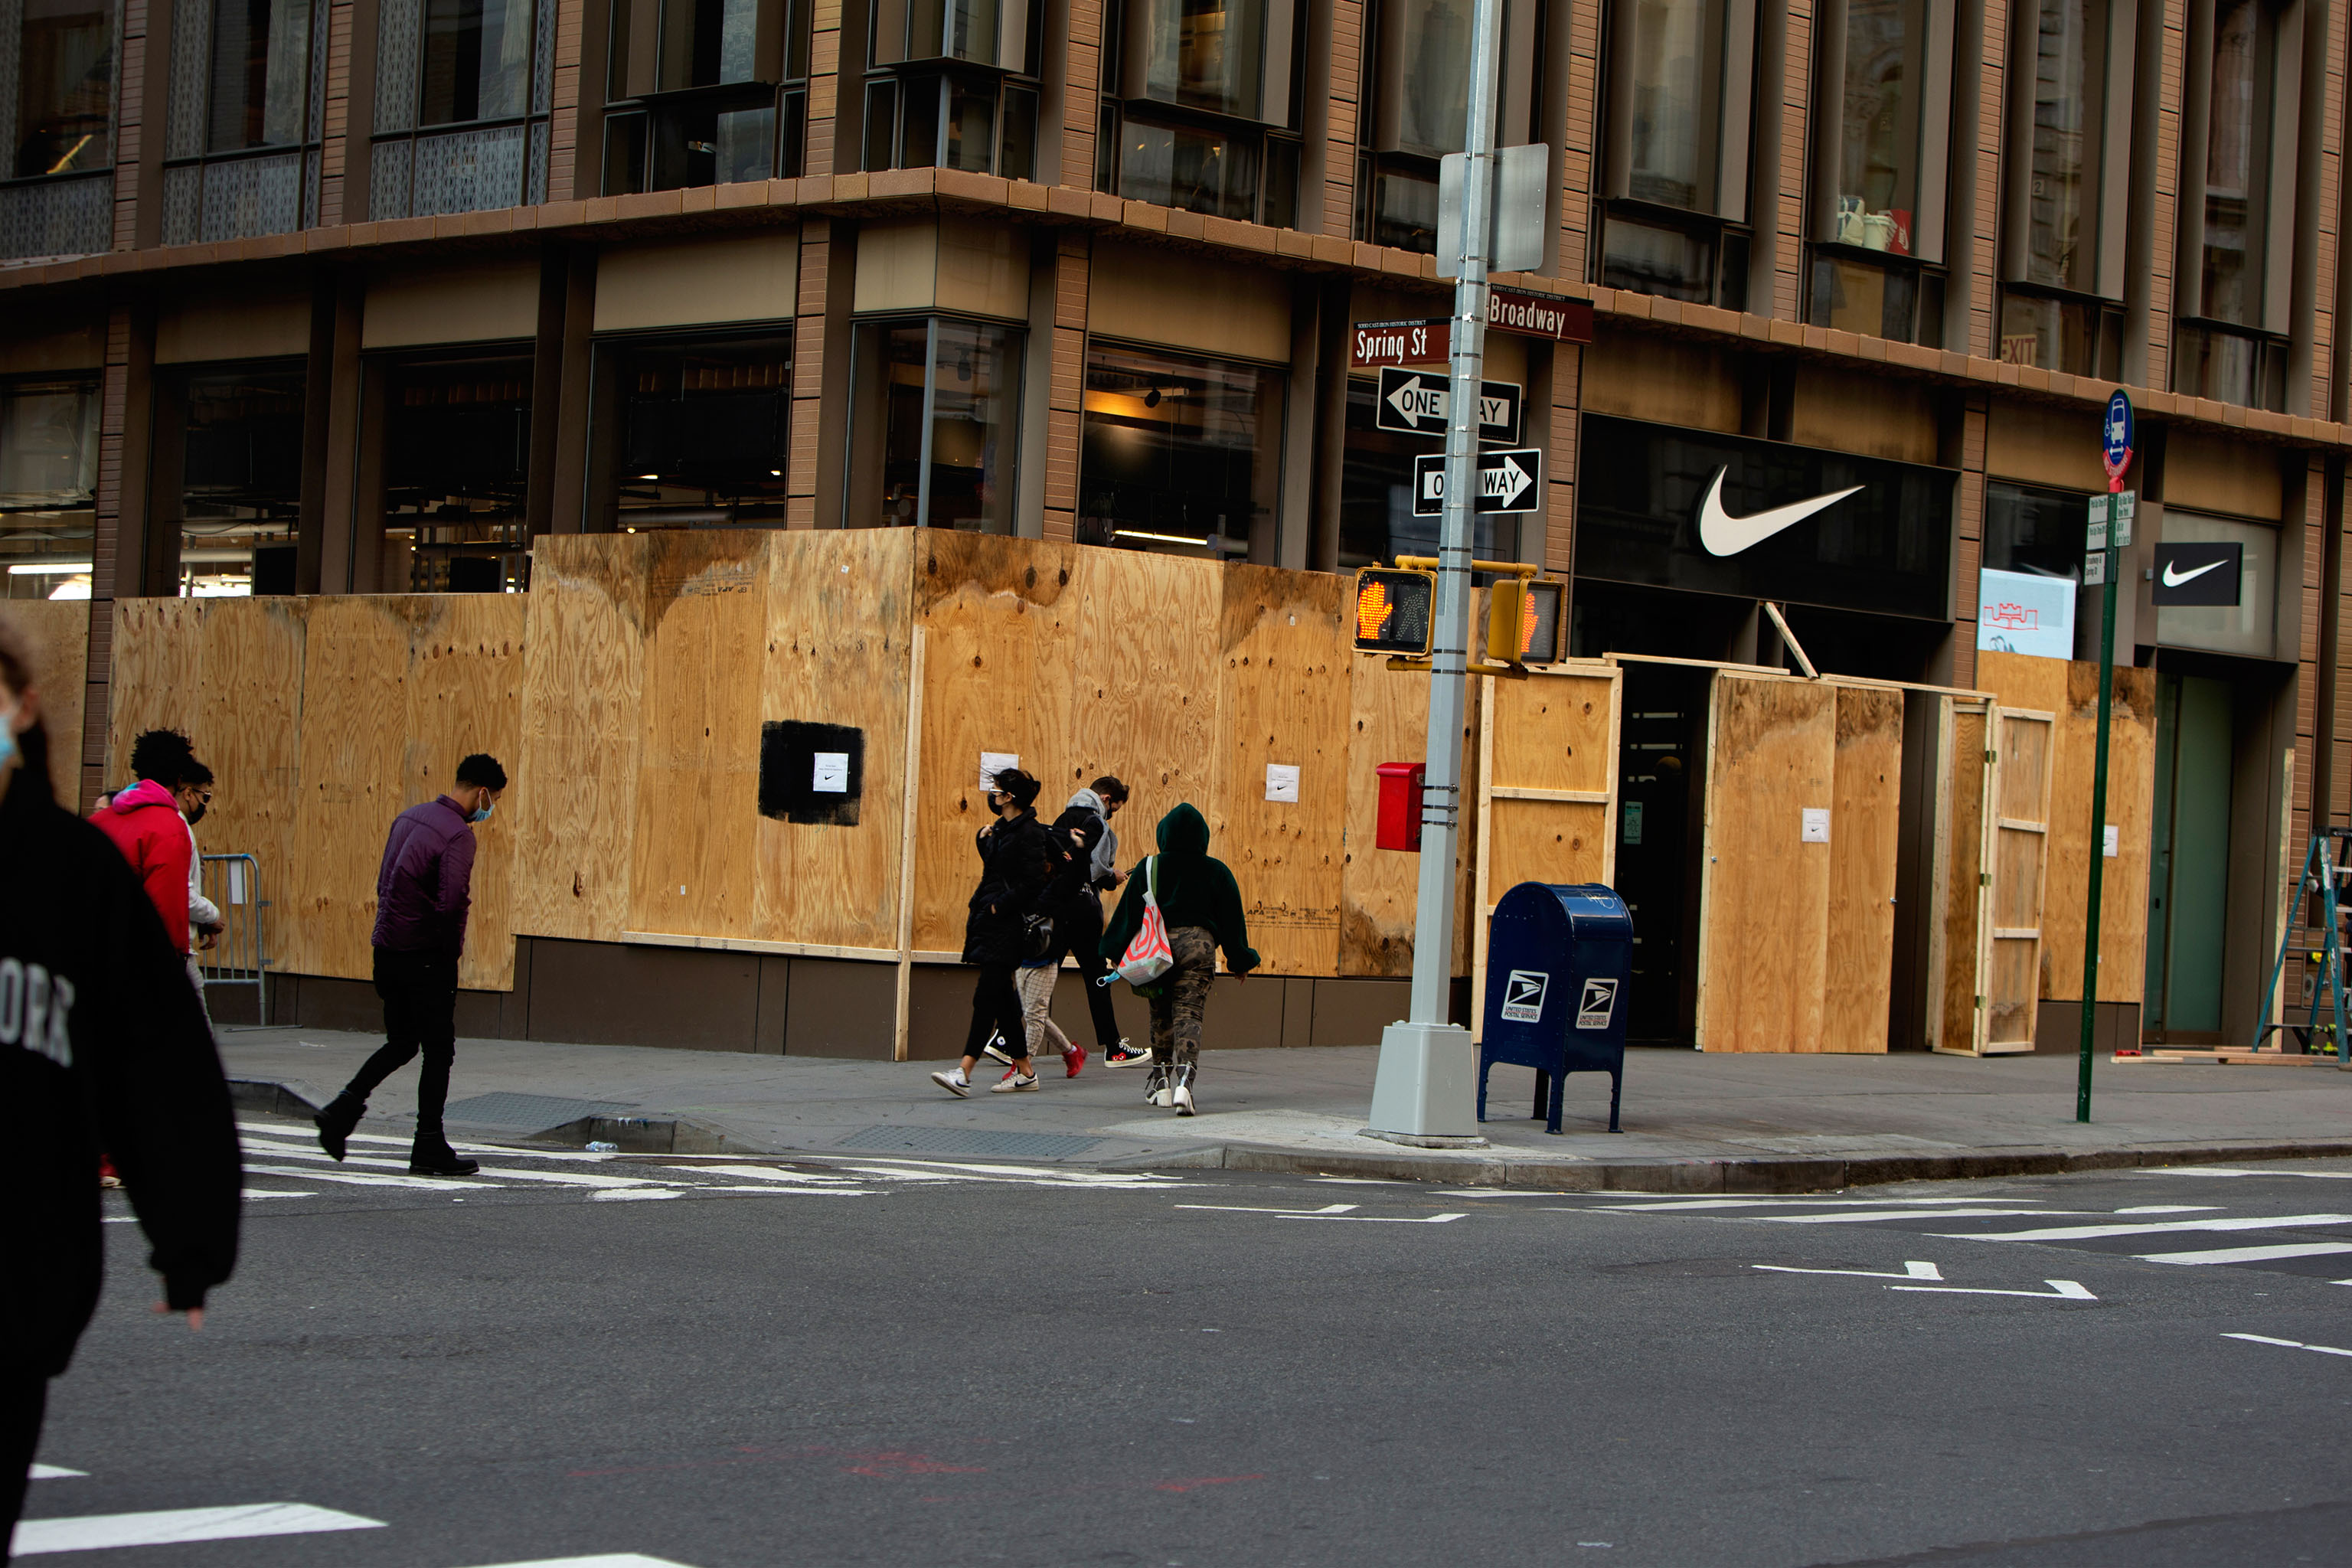 Boarded up stores across SoHo in New York .